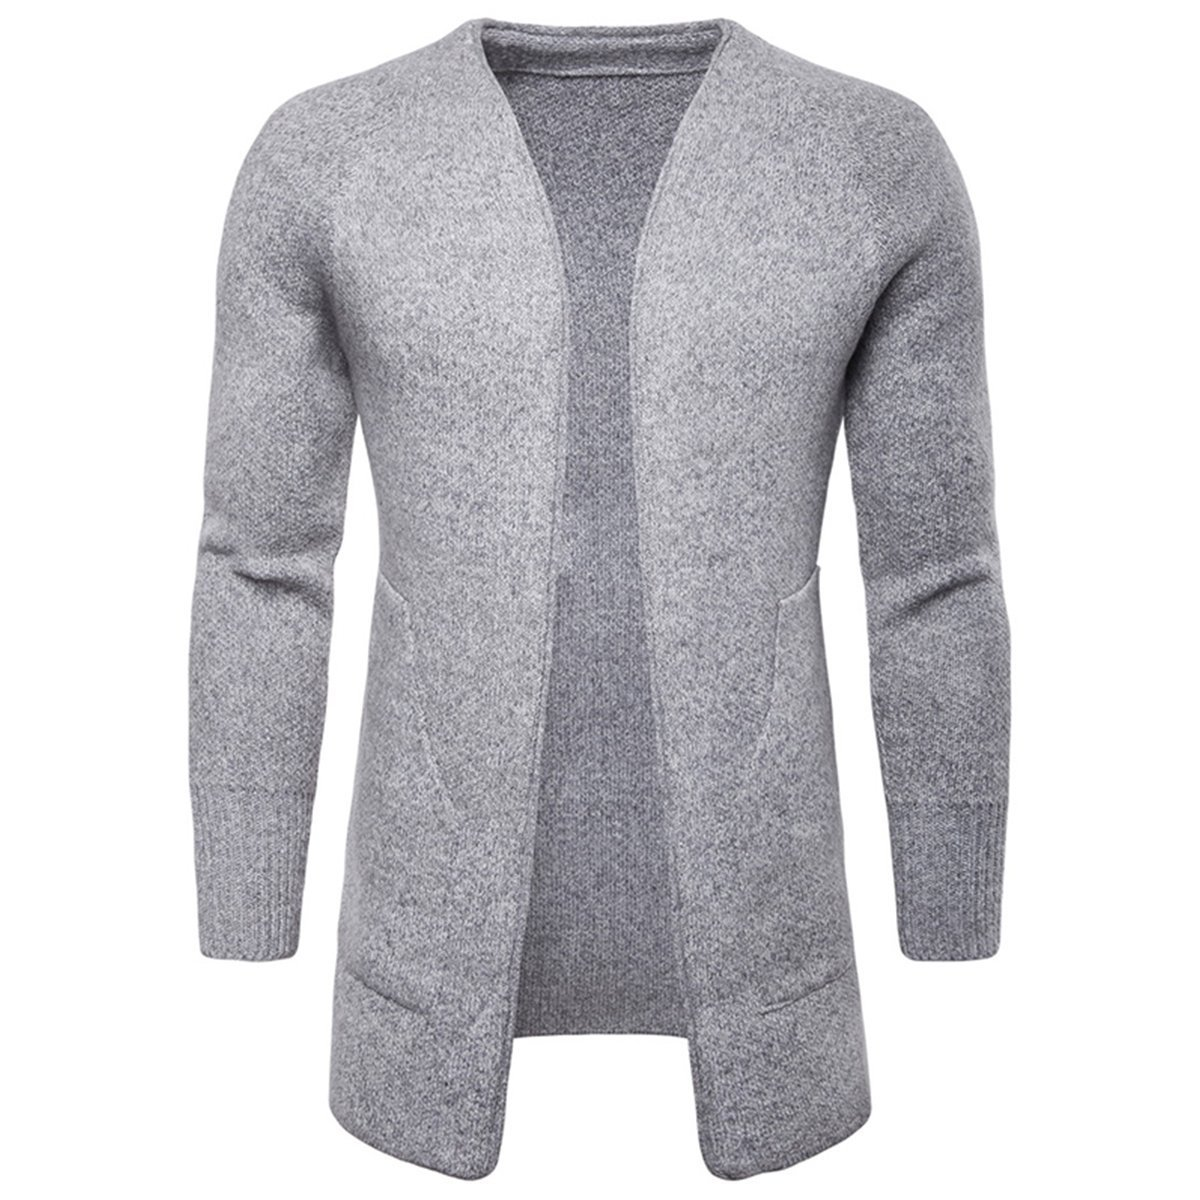 AOWOFS Mens Cardigan Long Knit Sweater Open-Front Solid Color Buckleless Large Pocket